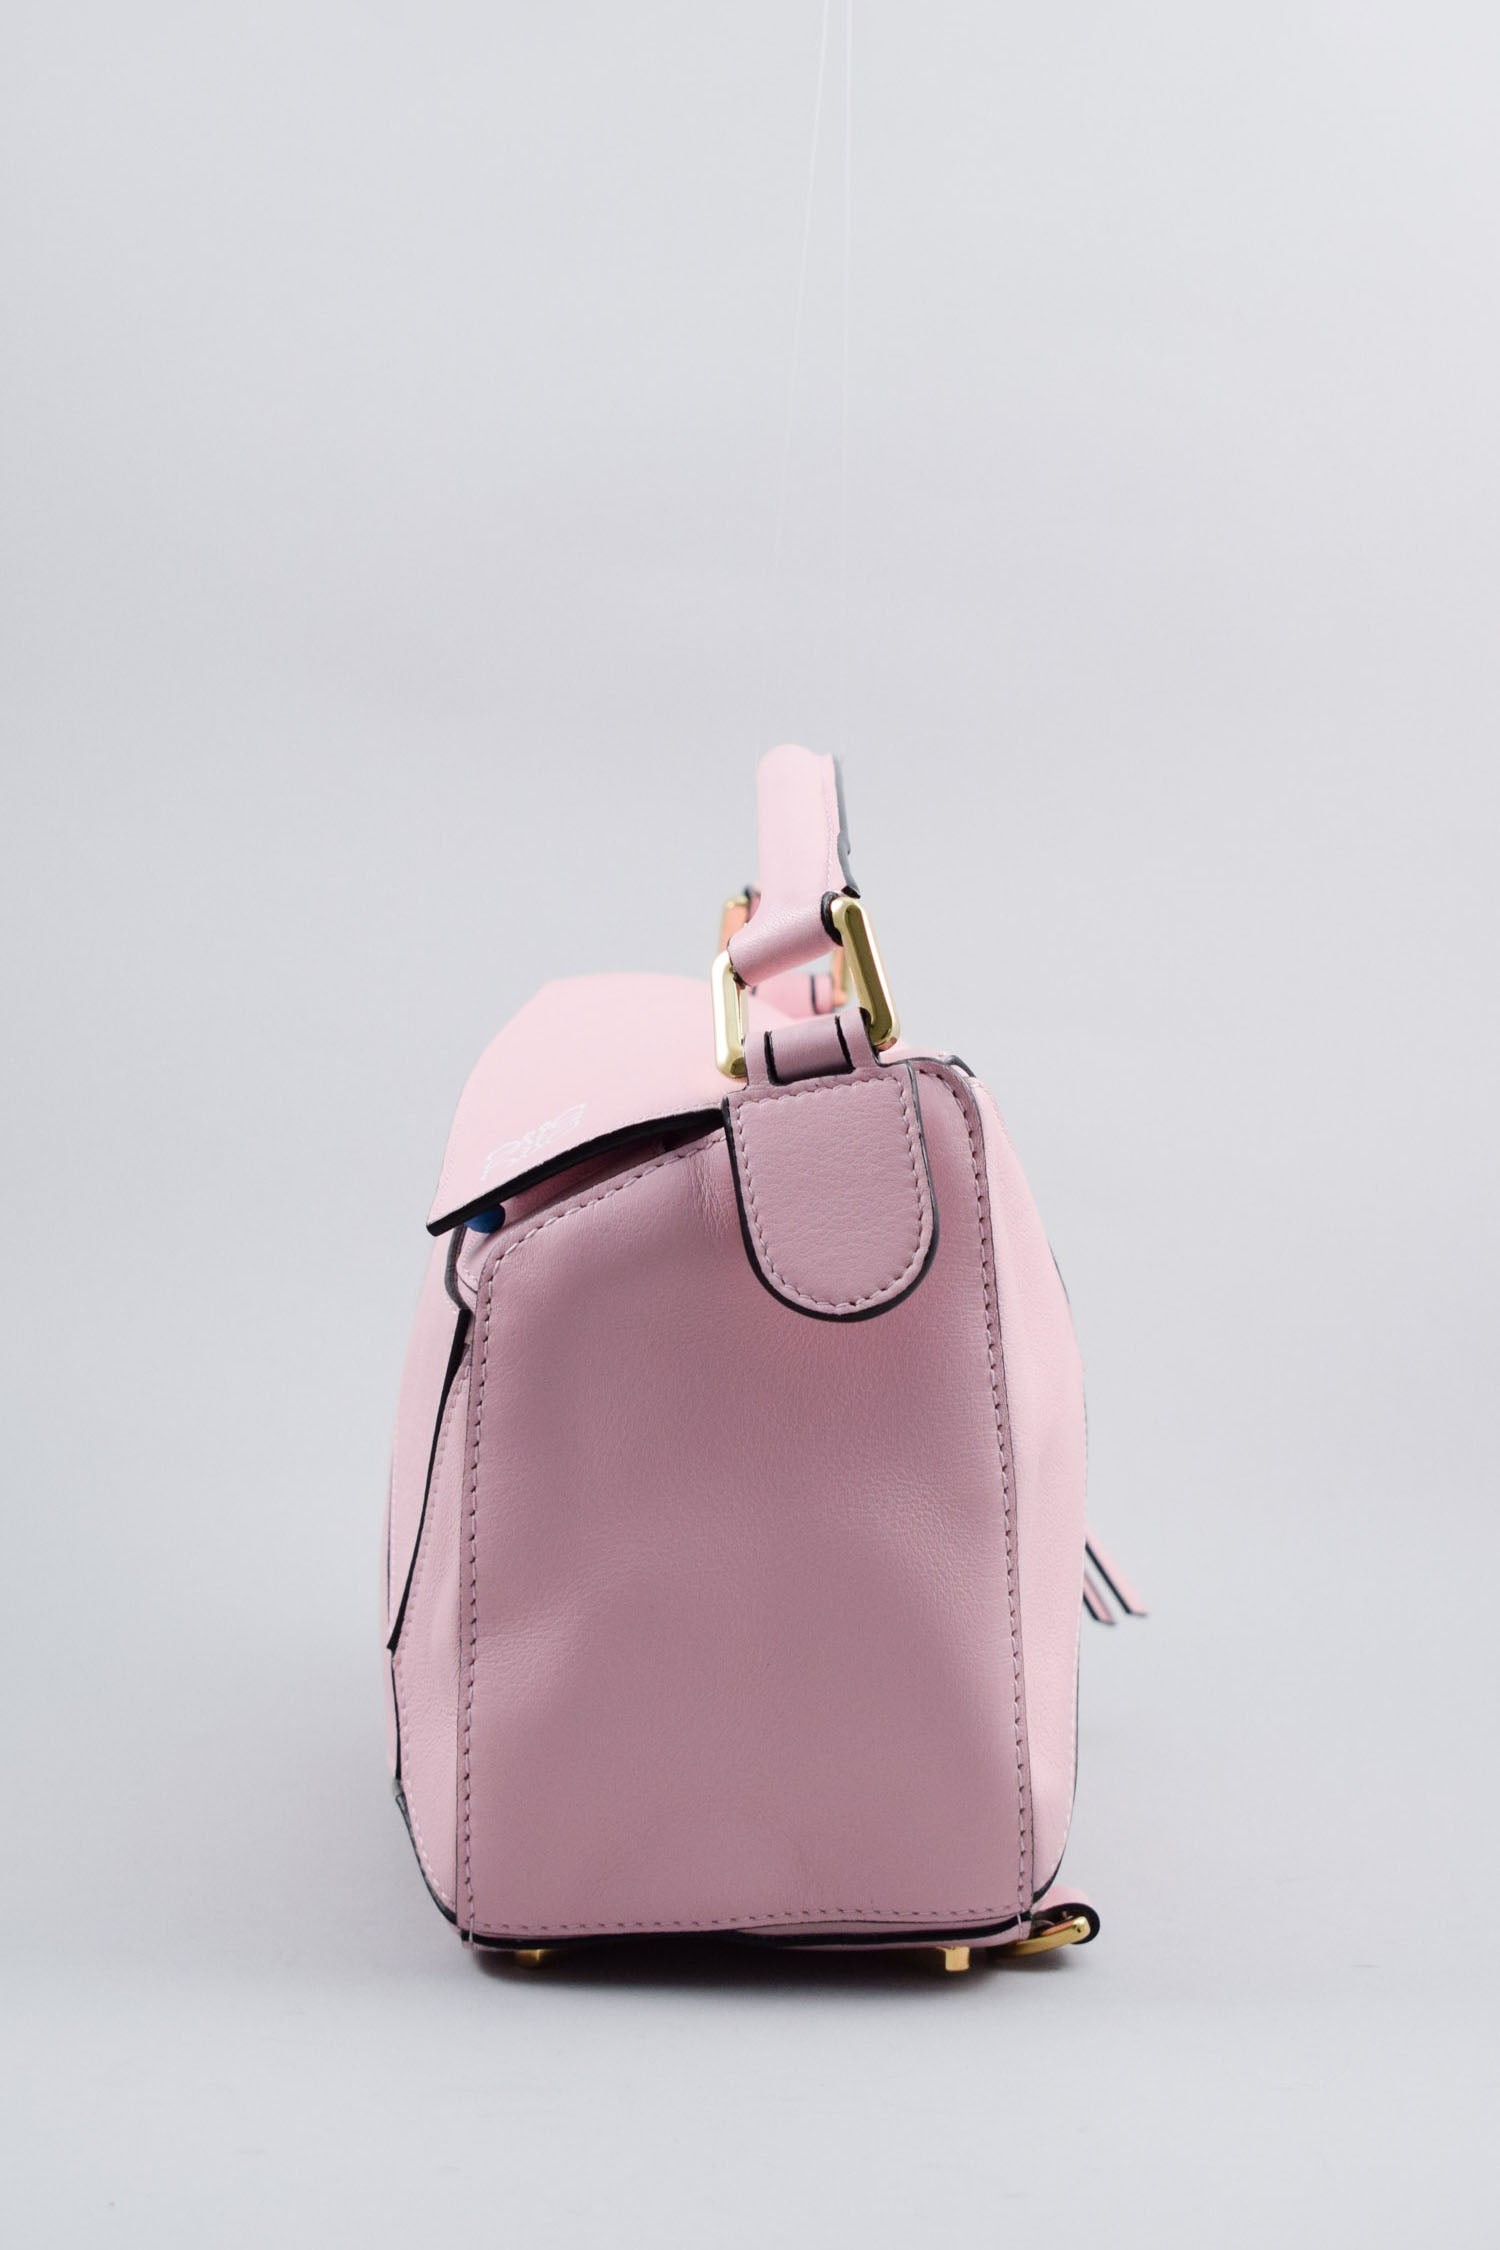 Loewe Pink Small Puzzle Bag